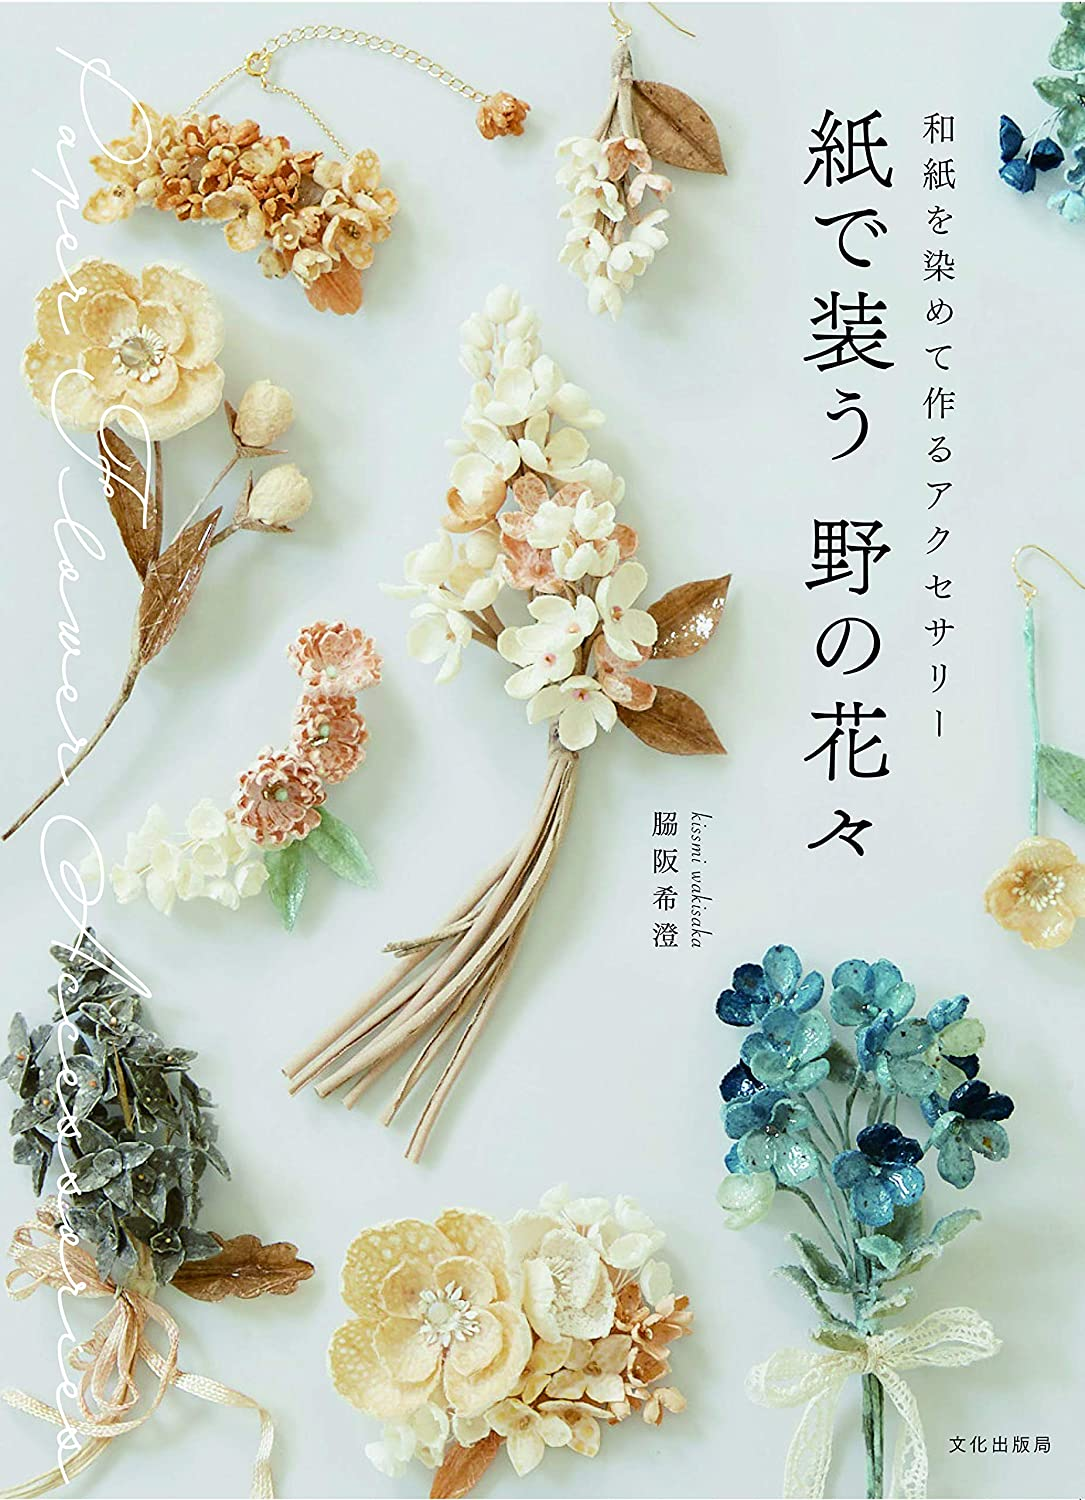 Wild flowers dressed in paper Accessories made by dyeing Japanese paper